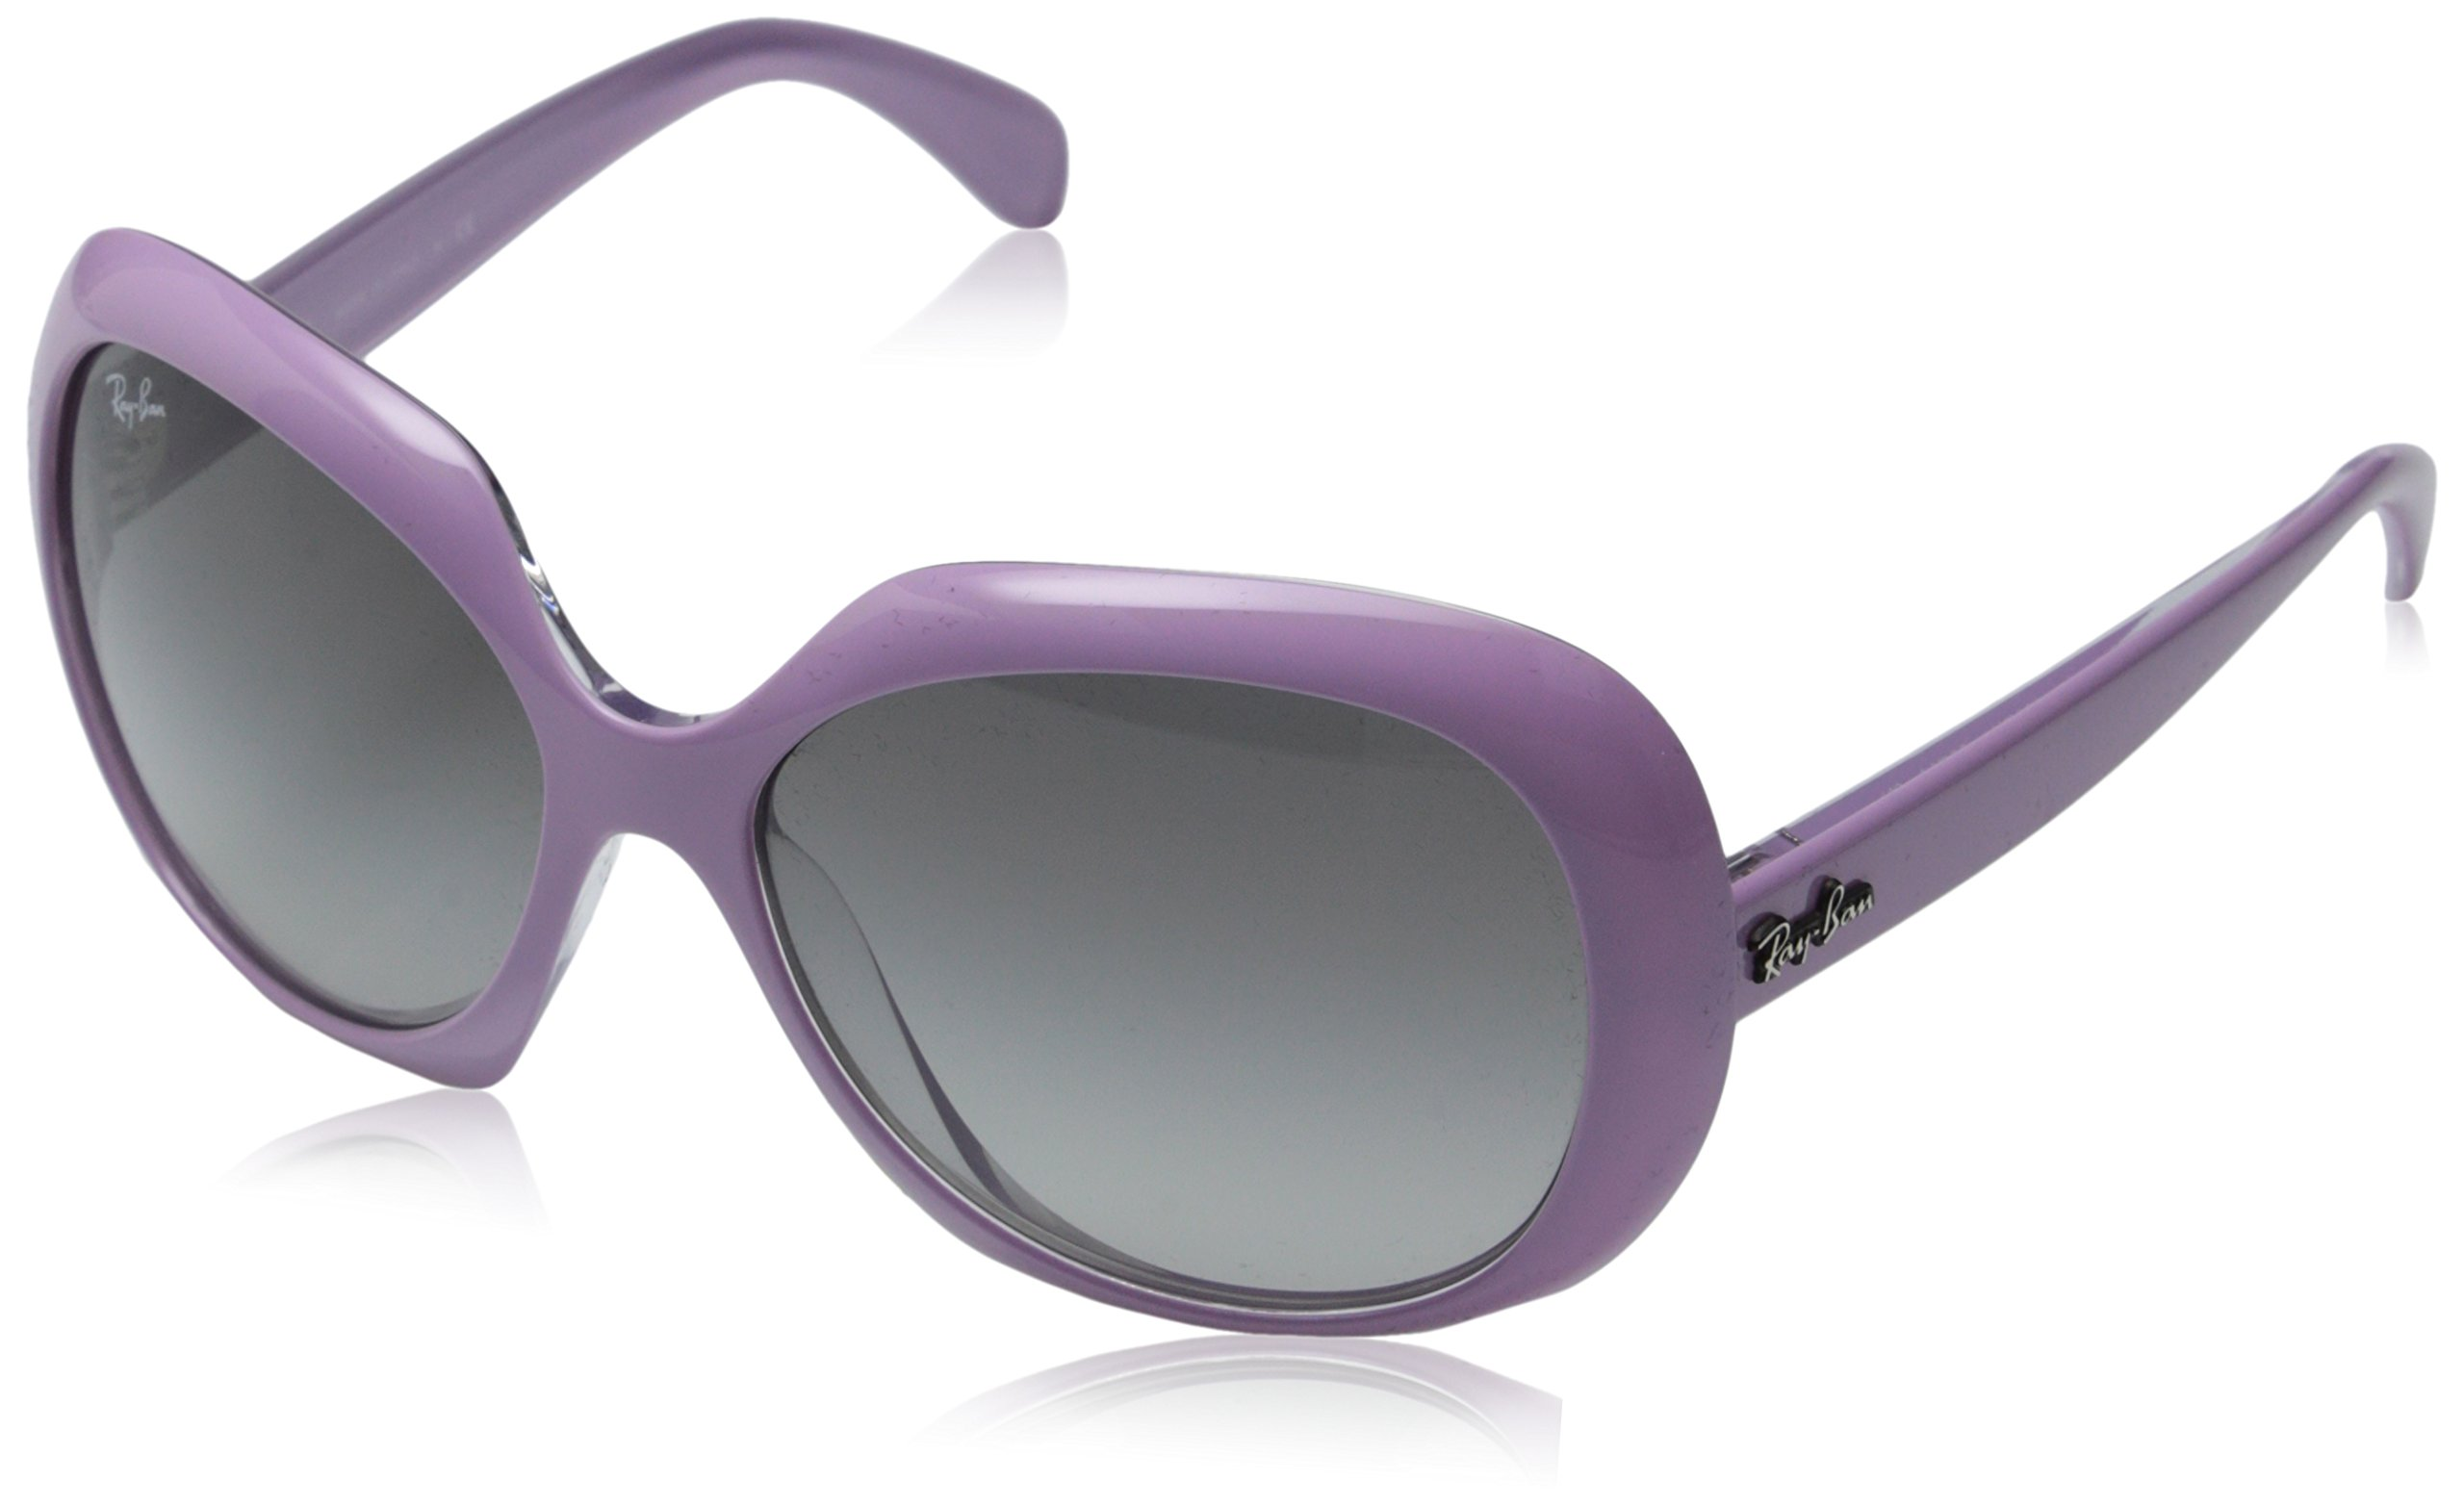 Ray-Ban INJECTED WOMAN SUNGLASS - TOP PINK ON TRANSPARENT Frame GREY GRADIENT DARK GREY Lenses 55mm Non-Polarized